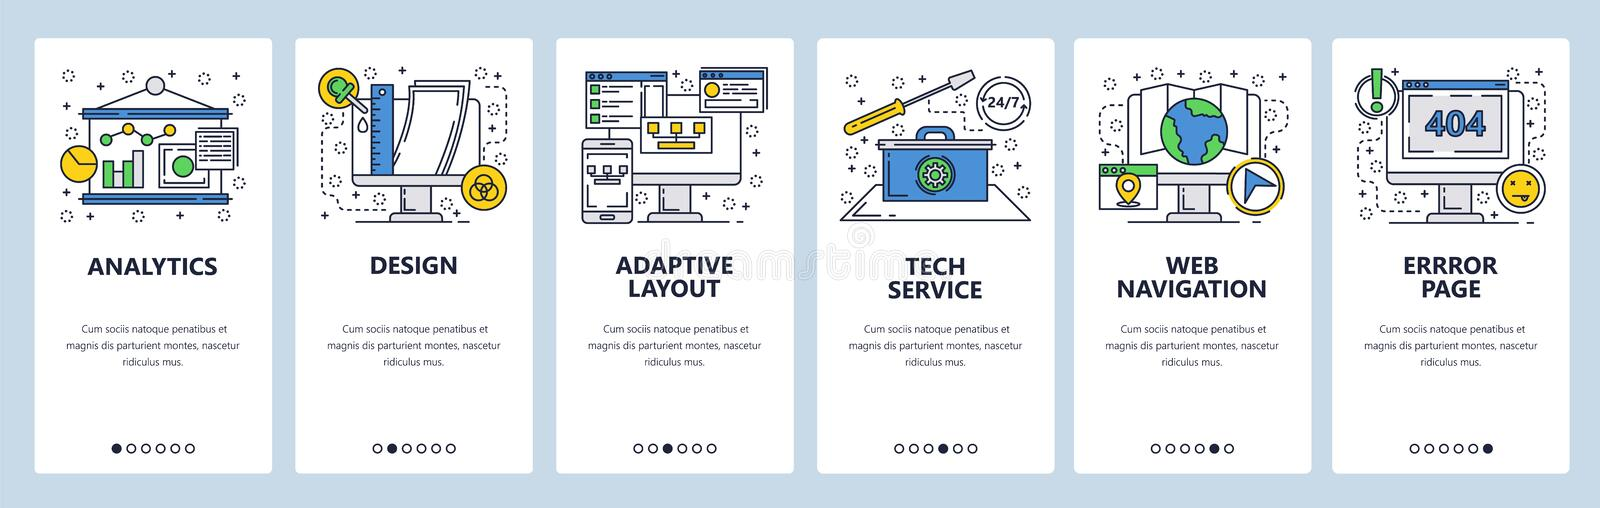 Web site onboarding screens. Computer tech service, error page, adaptive layout. Menu vector banner template for website royalty free illustration